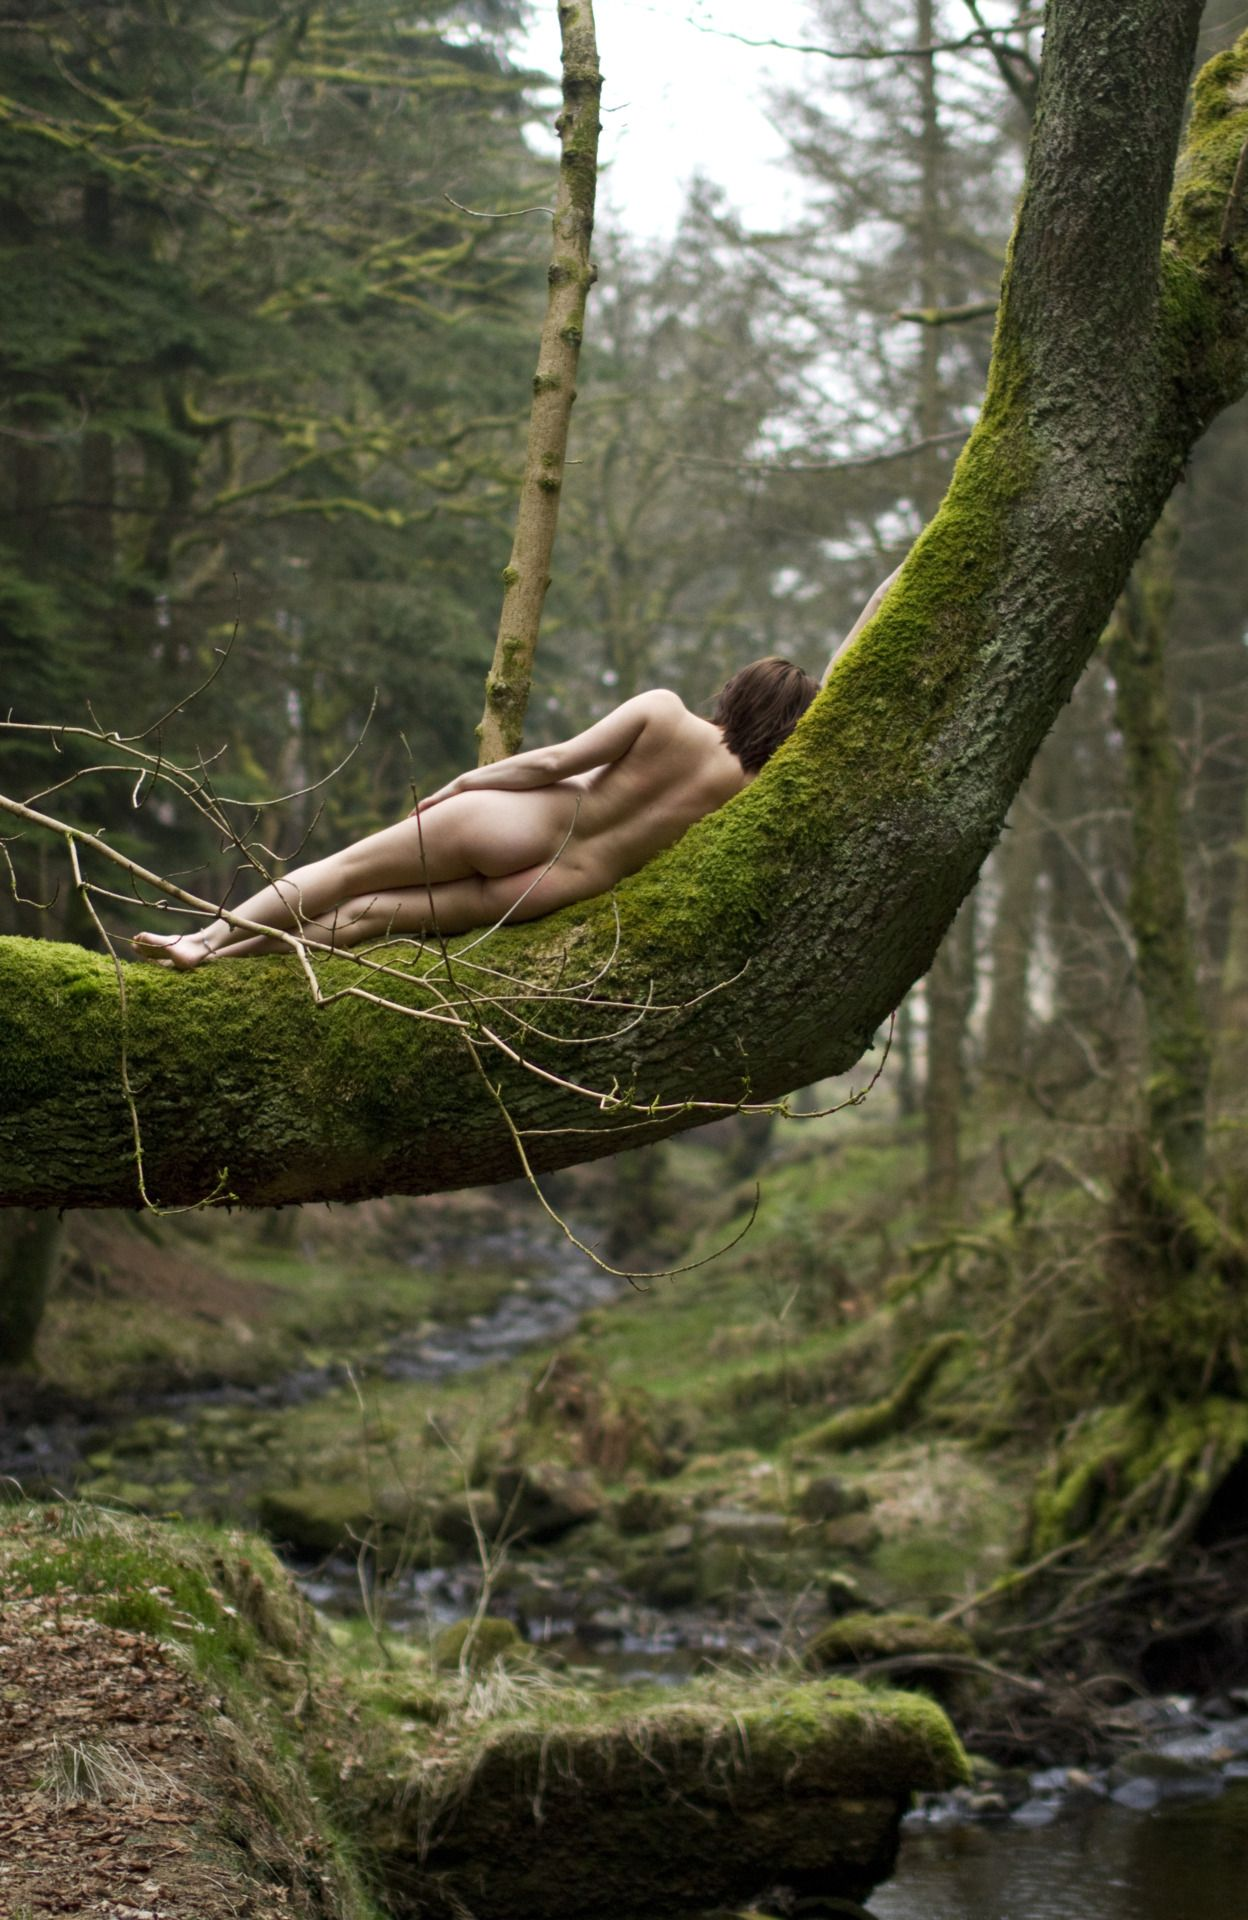 Nude photography in nature